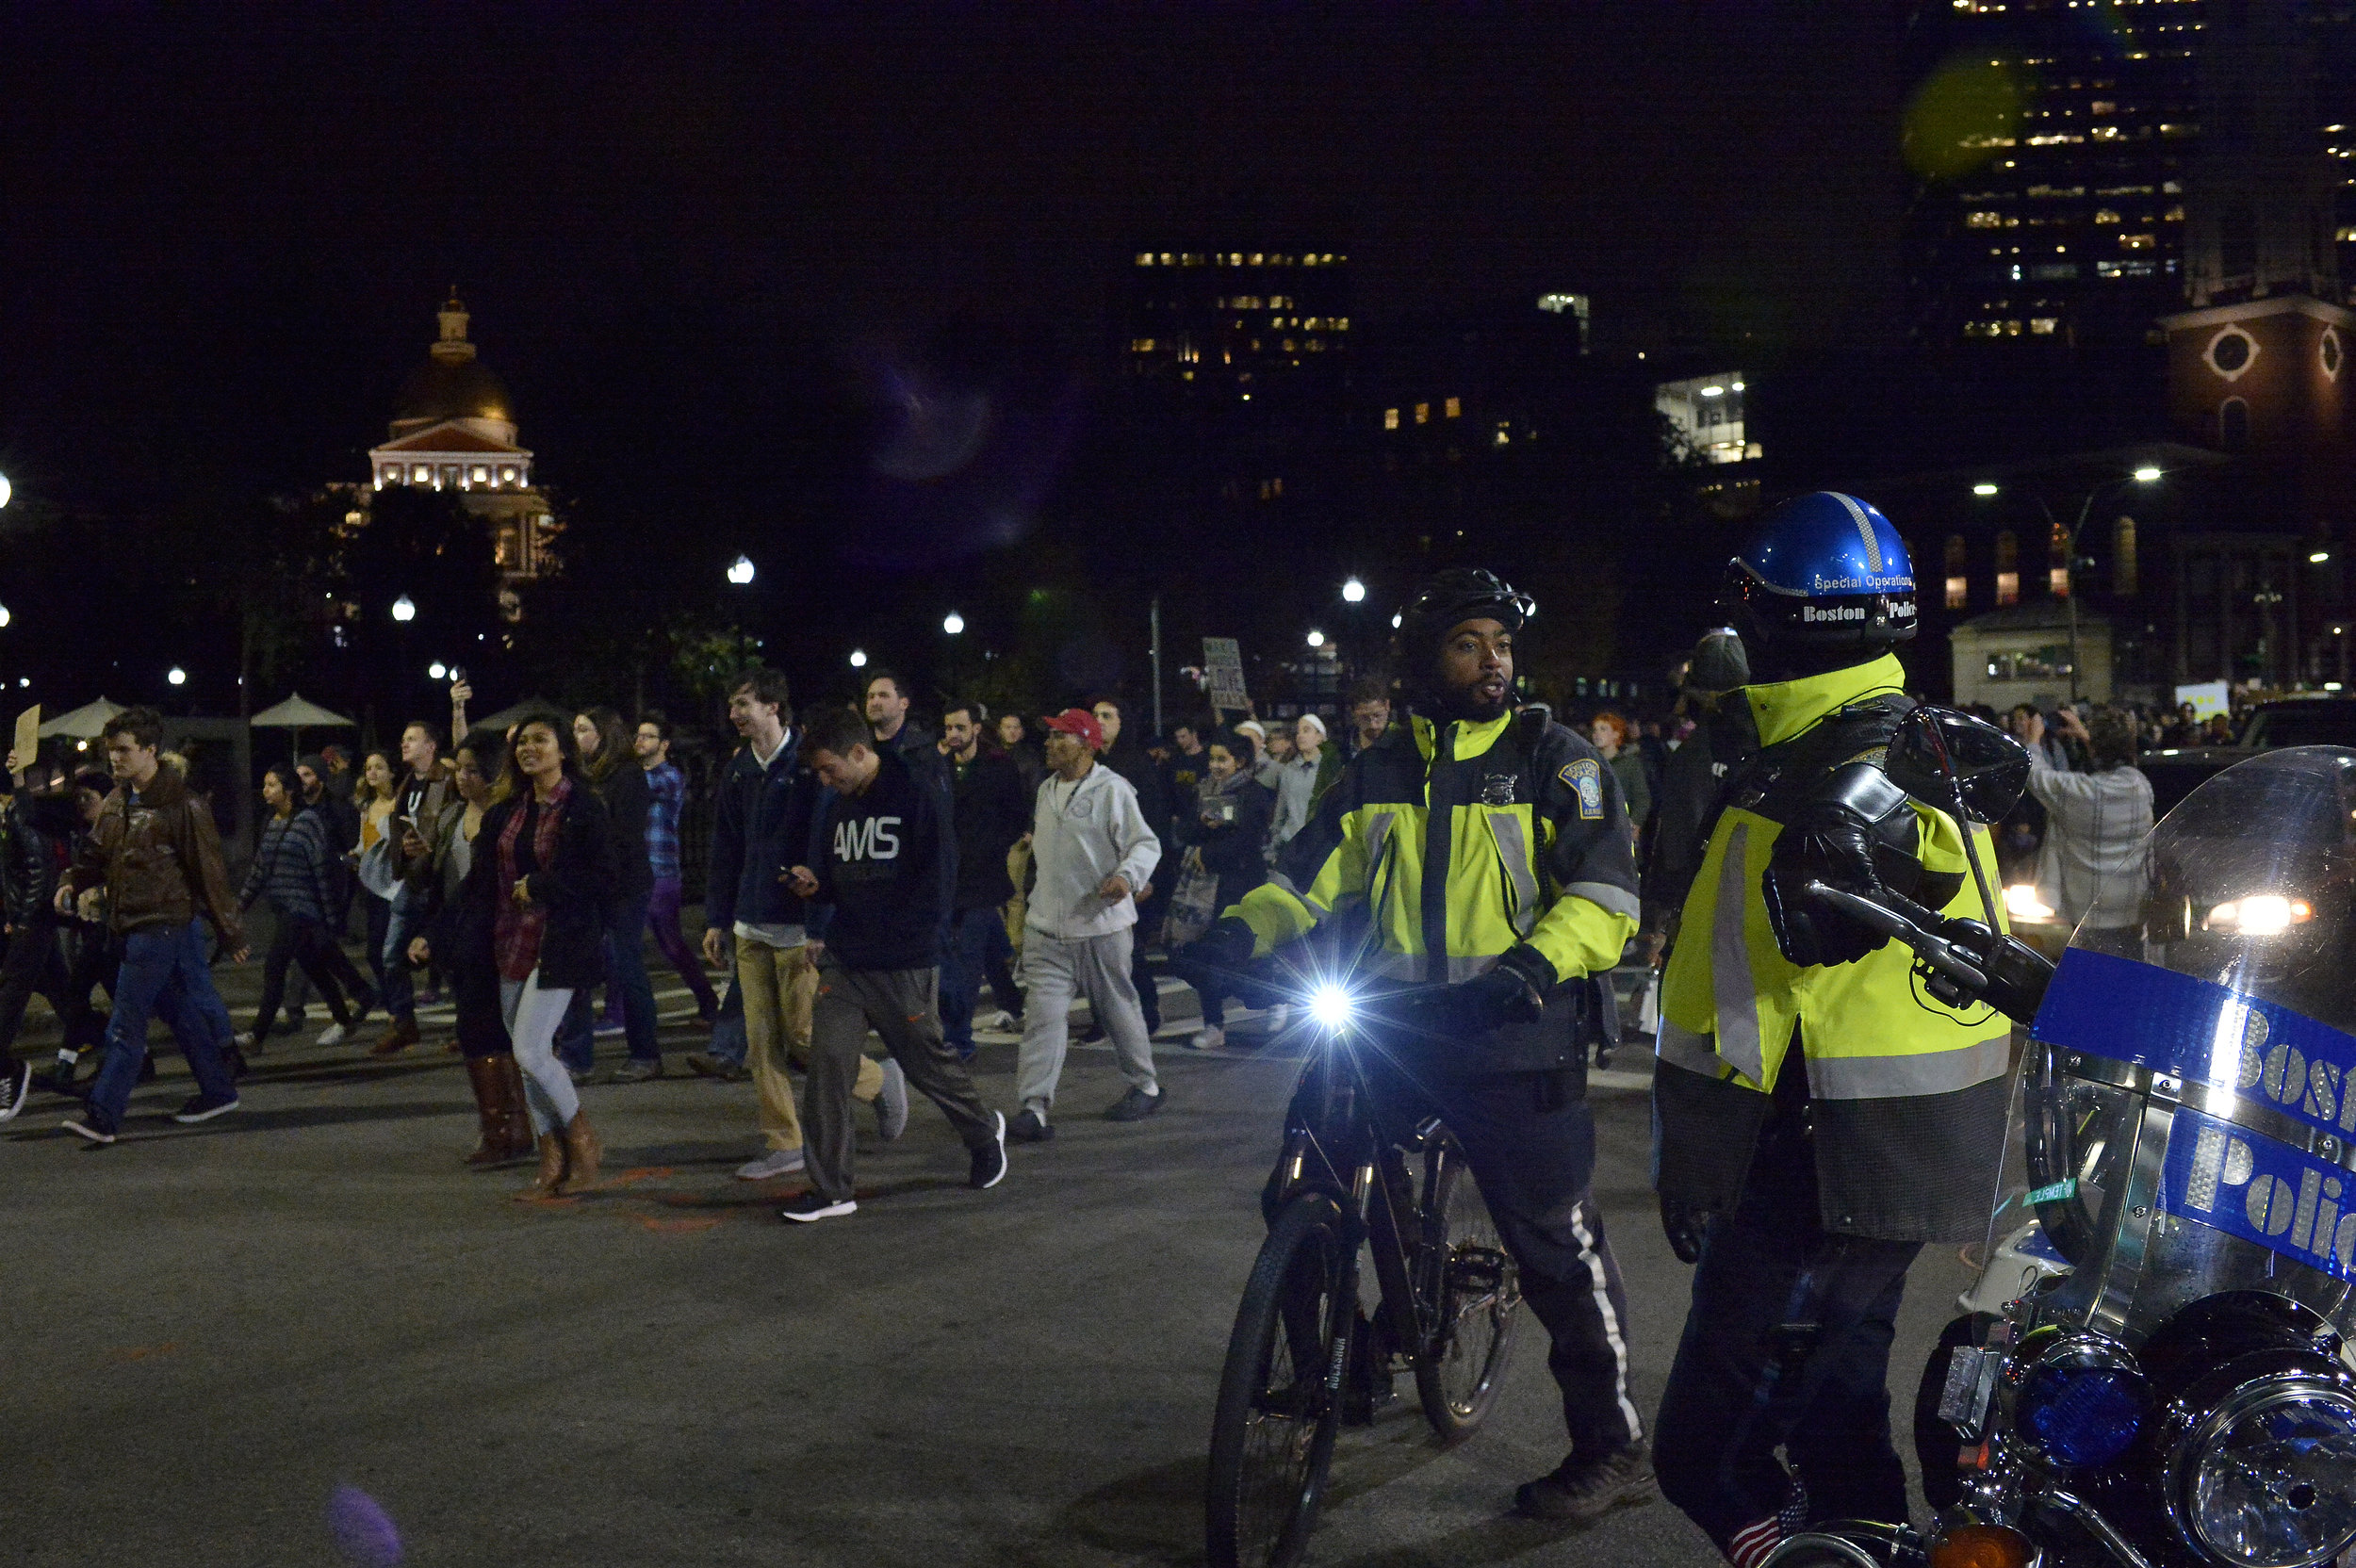 BOSTON, MA November 9, 2016: Boston Police estimate more than 6,000 protestors took part in a rally on Boston Common to protest the election of Republican president-elect Donald J. Trump on Tuesday, November 9, 2016. CR: Paul Marotta, SIPAUSA